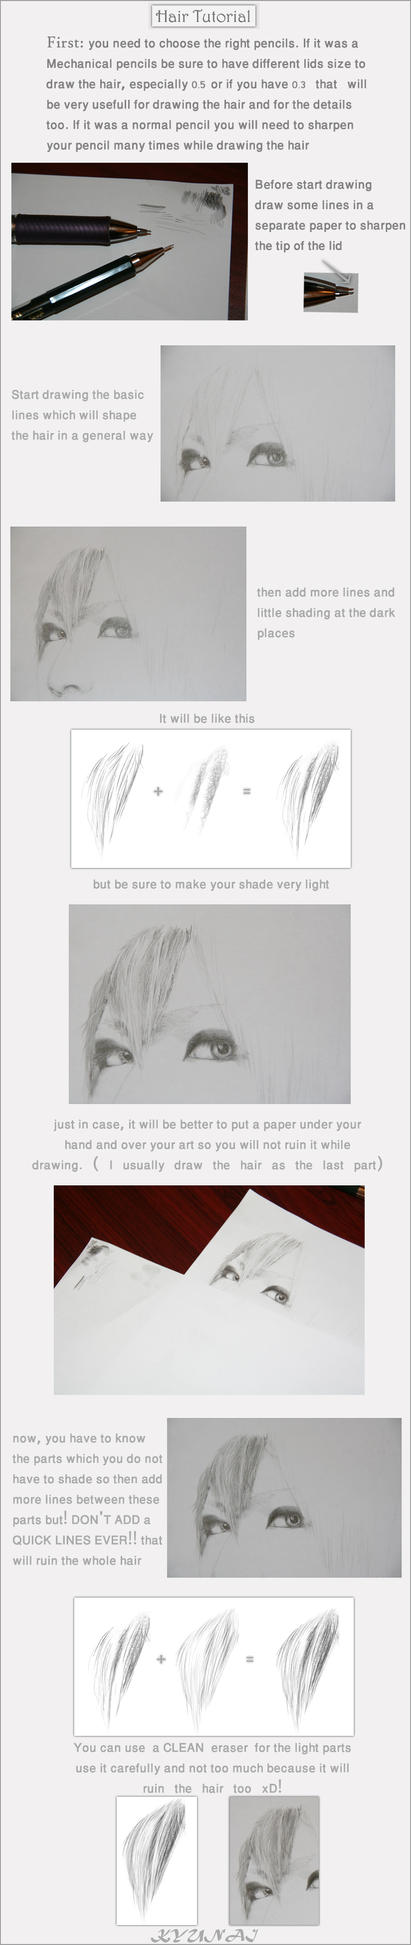 Simple Hair Tutorial by Kyunai